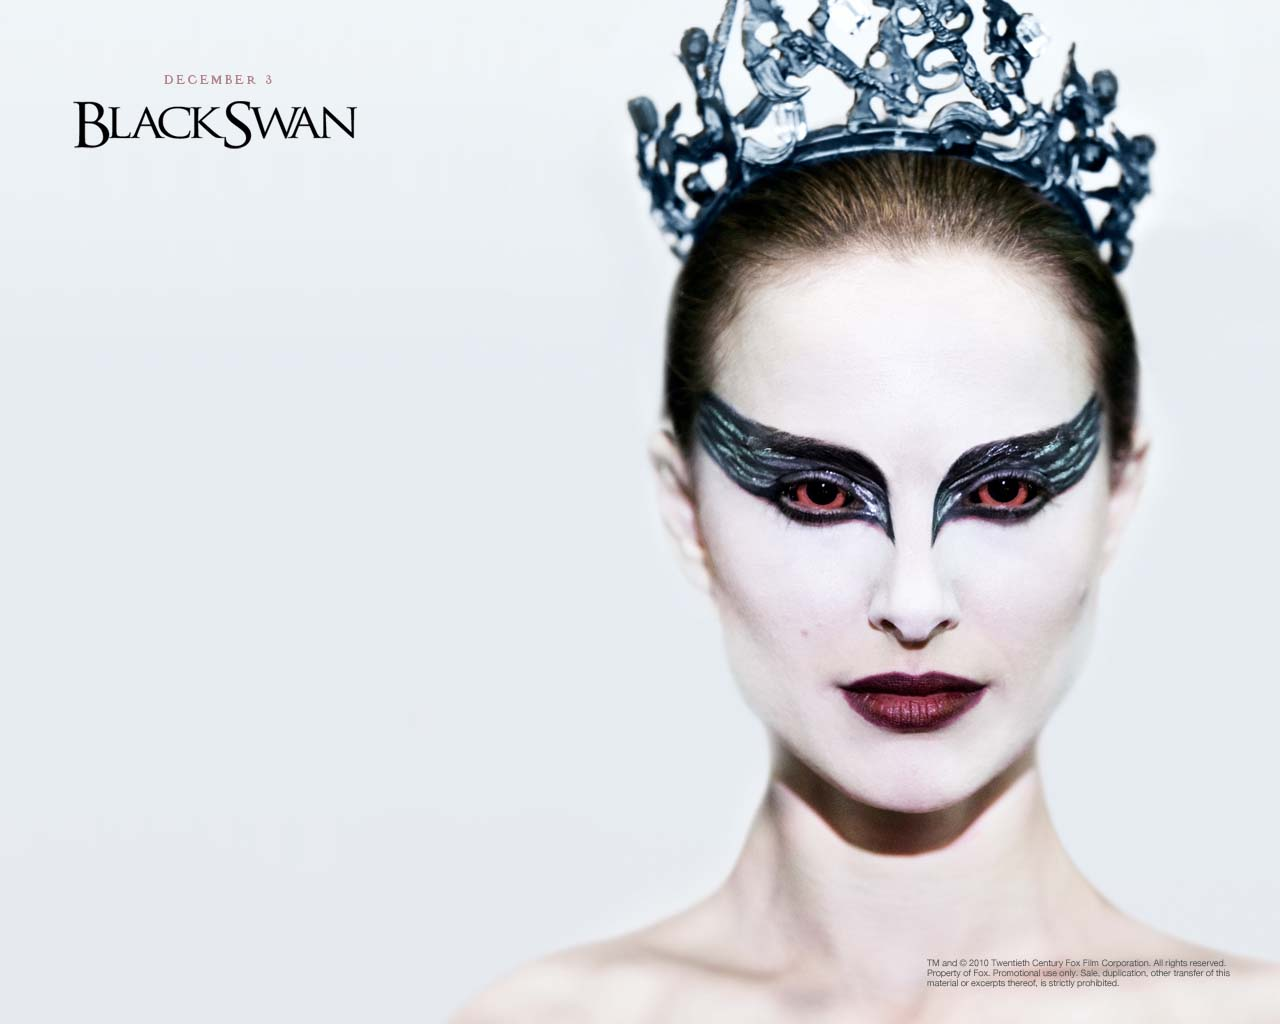 a million of wallpapers com black swan movie wallpapers. Black Bedroom Furniture Sets. Home Design Ideas